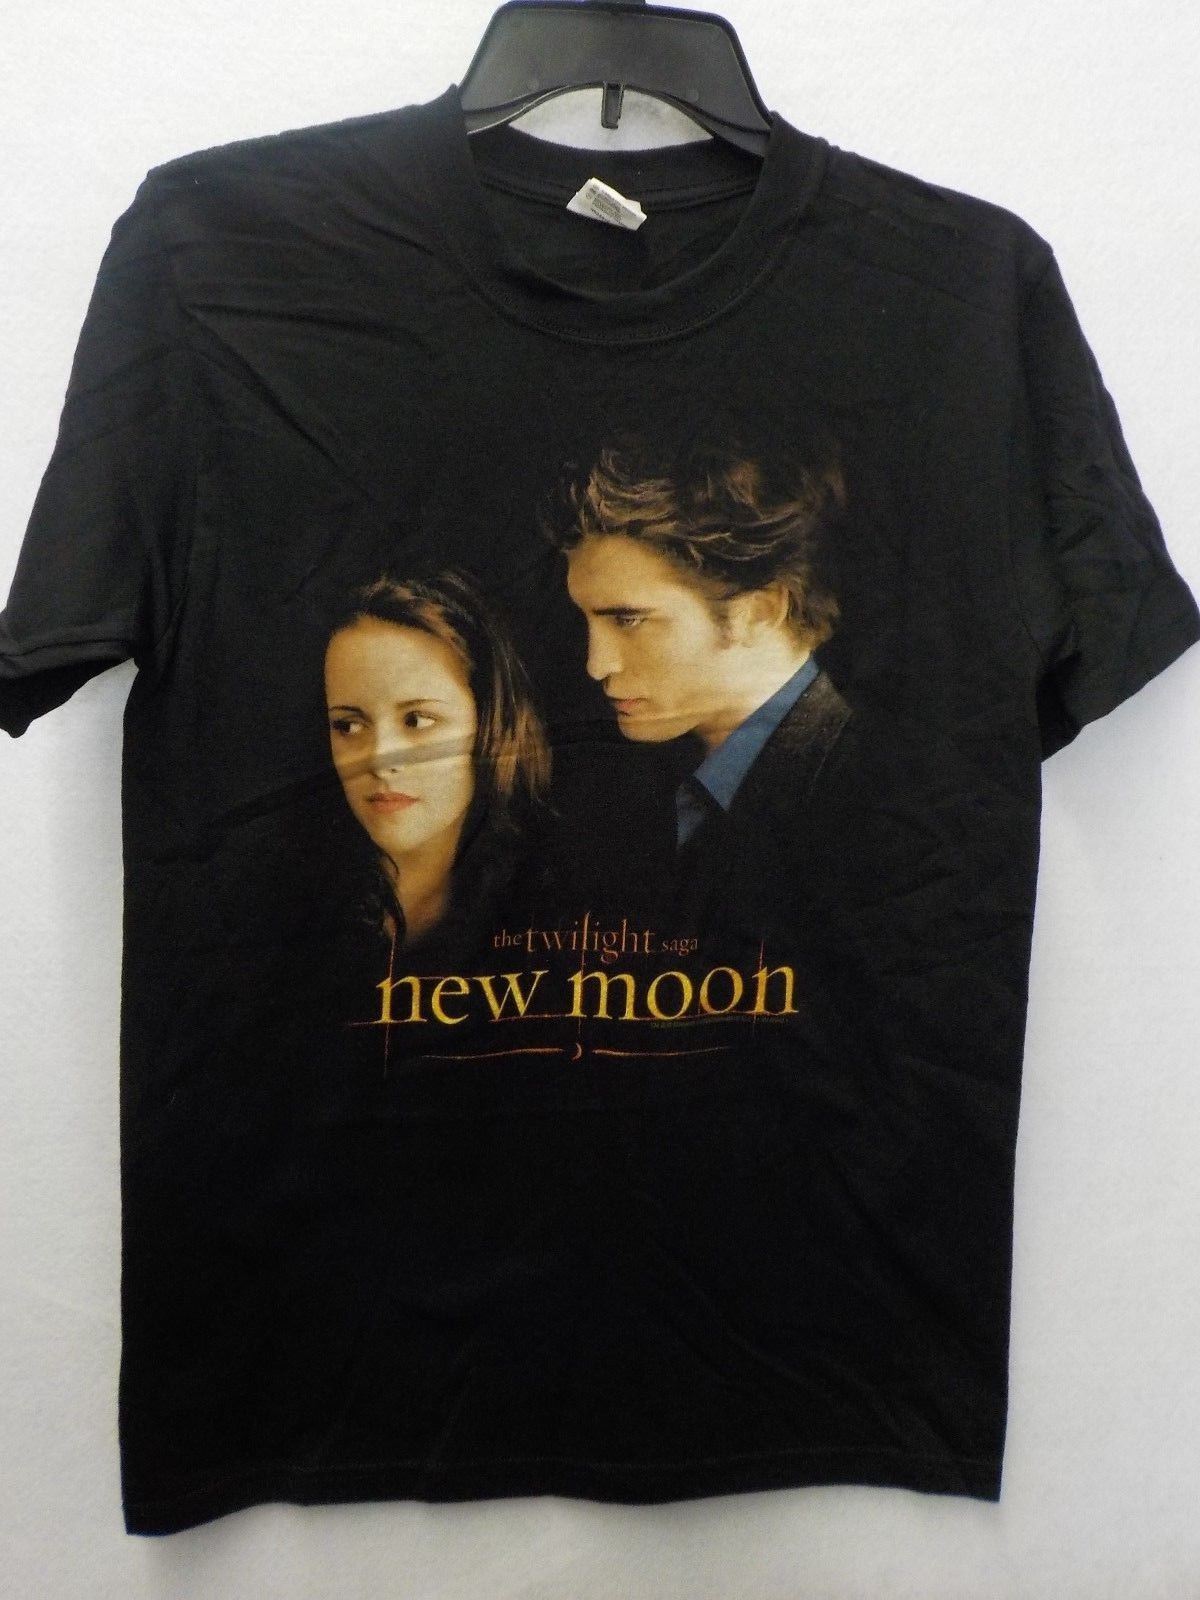 MENS TWILIGHT SAGA NEW MOON BELLA EDWARD BLACK GRAPHIC TSHIRT NEW #13122V Mens T Shirts Fashion 2018 Clothing